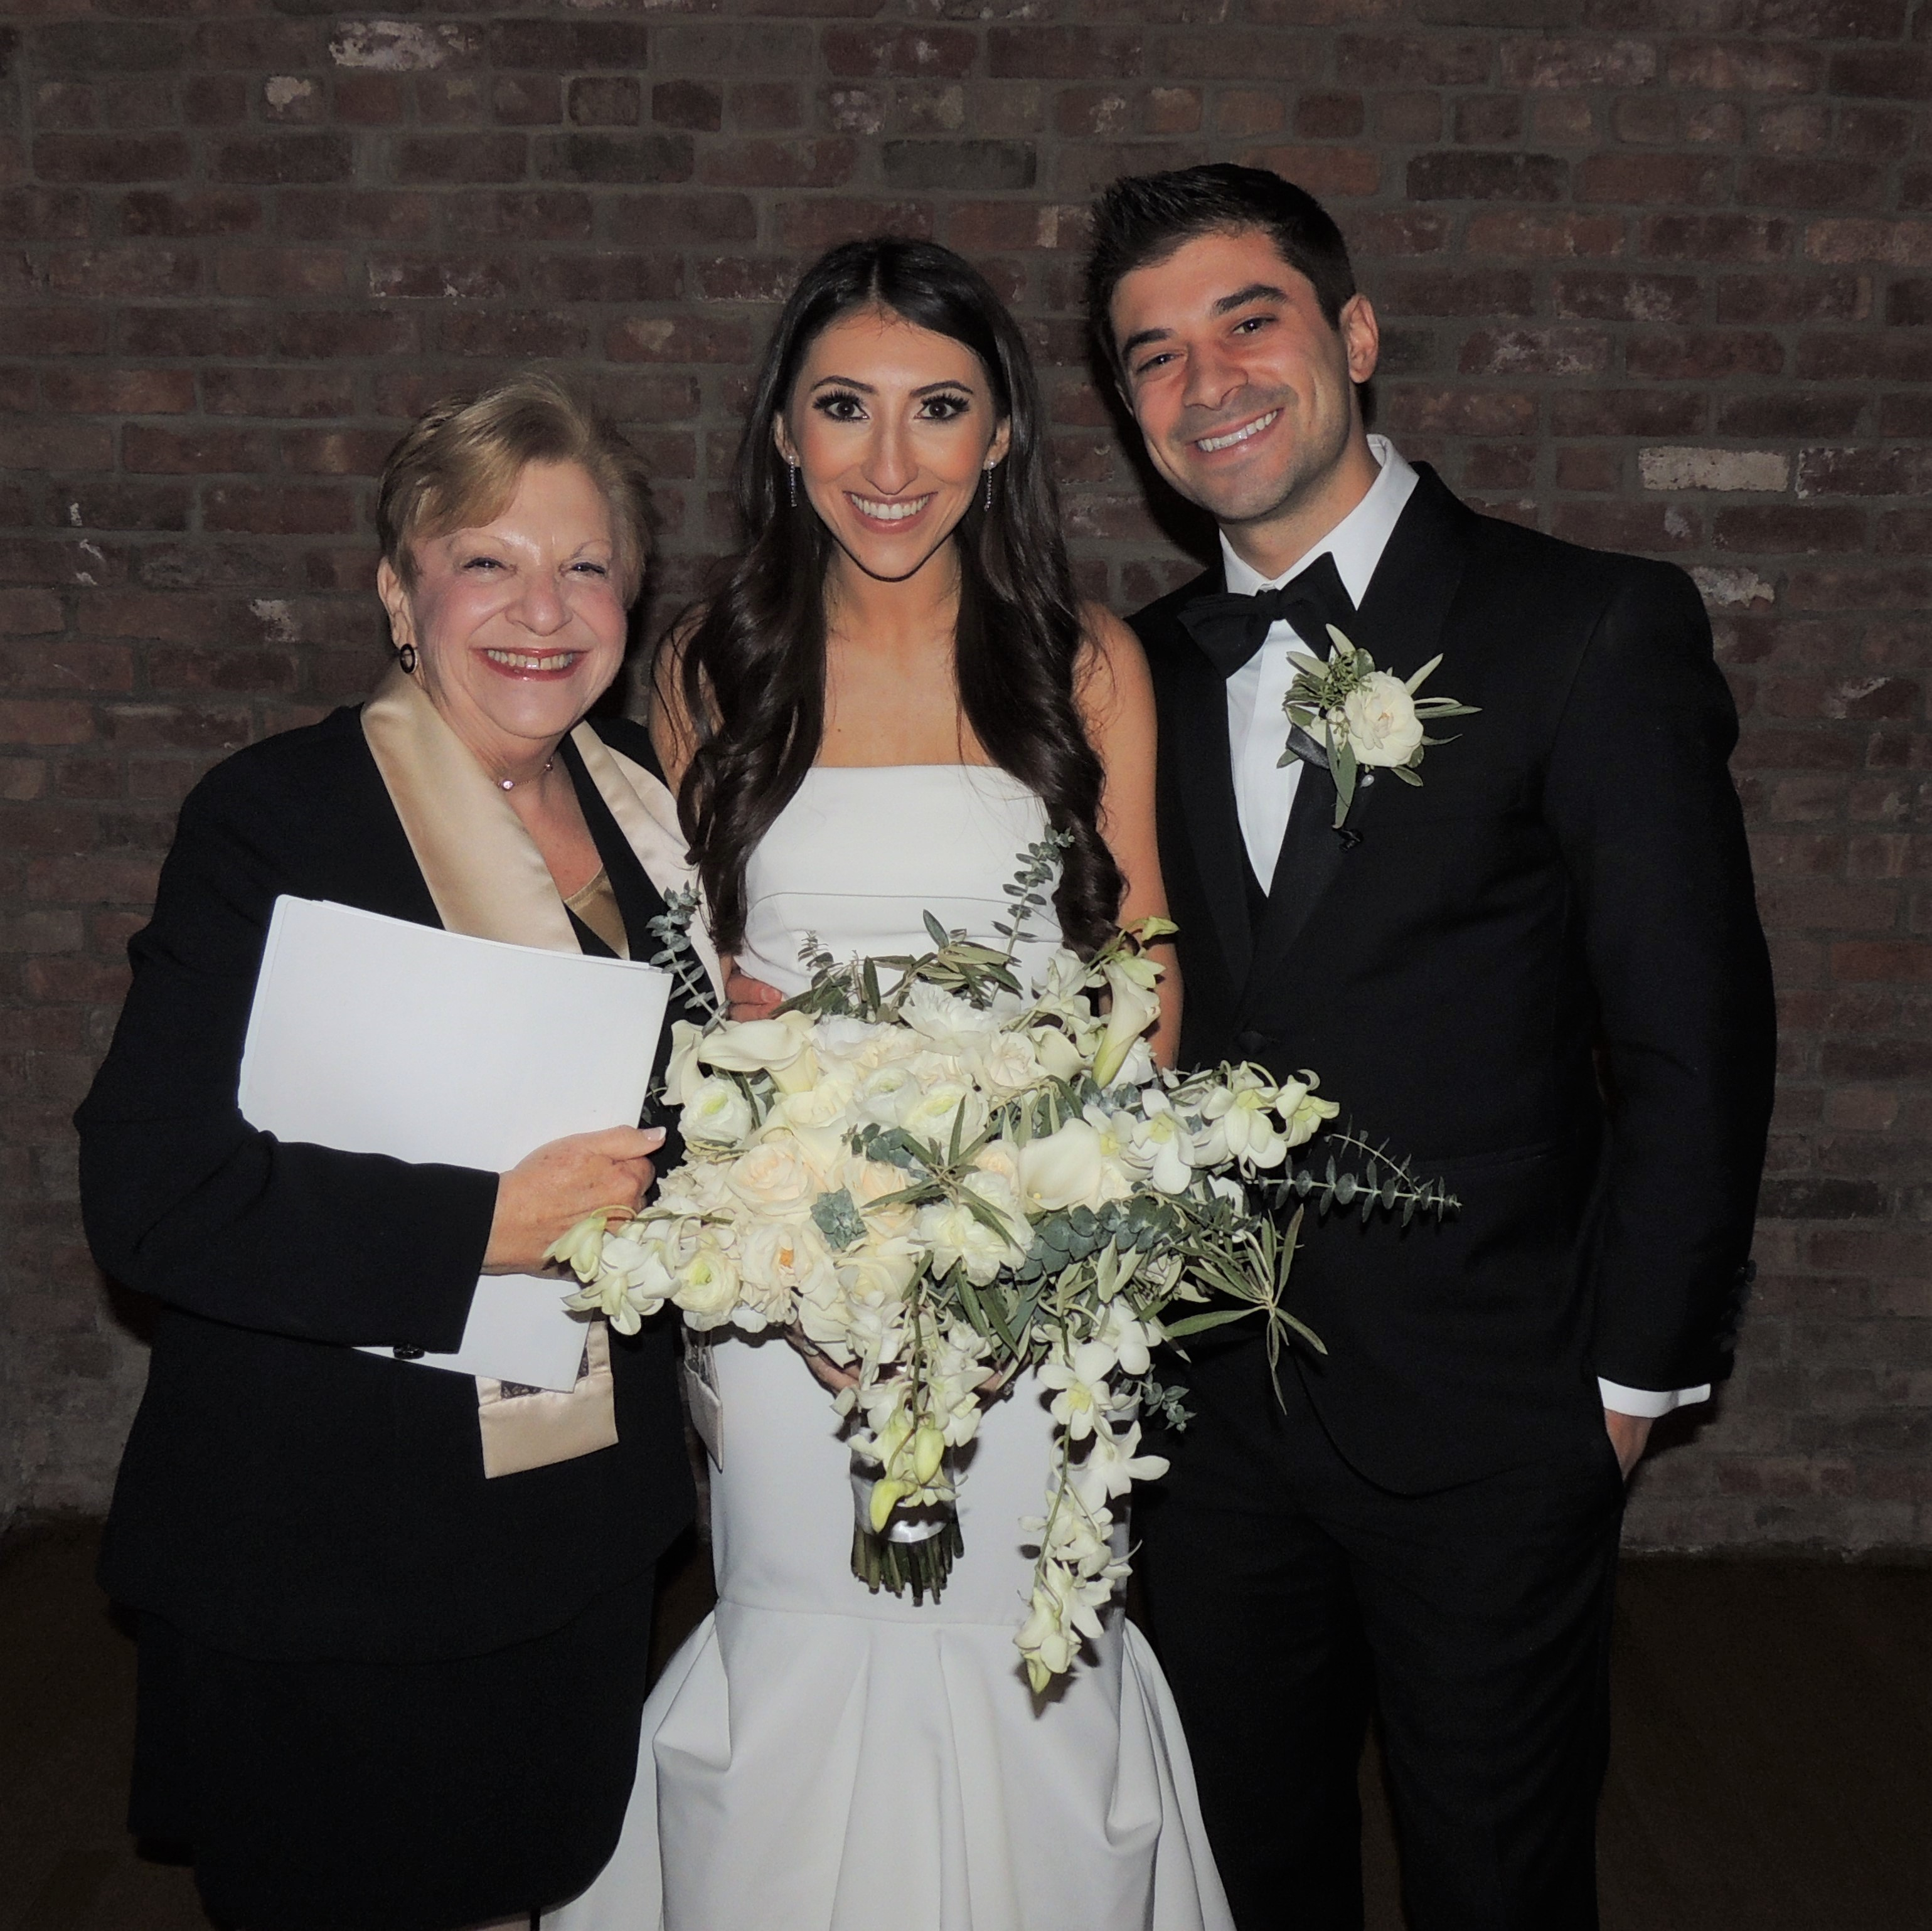 One Heart Personalized Ceremonies